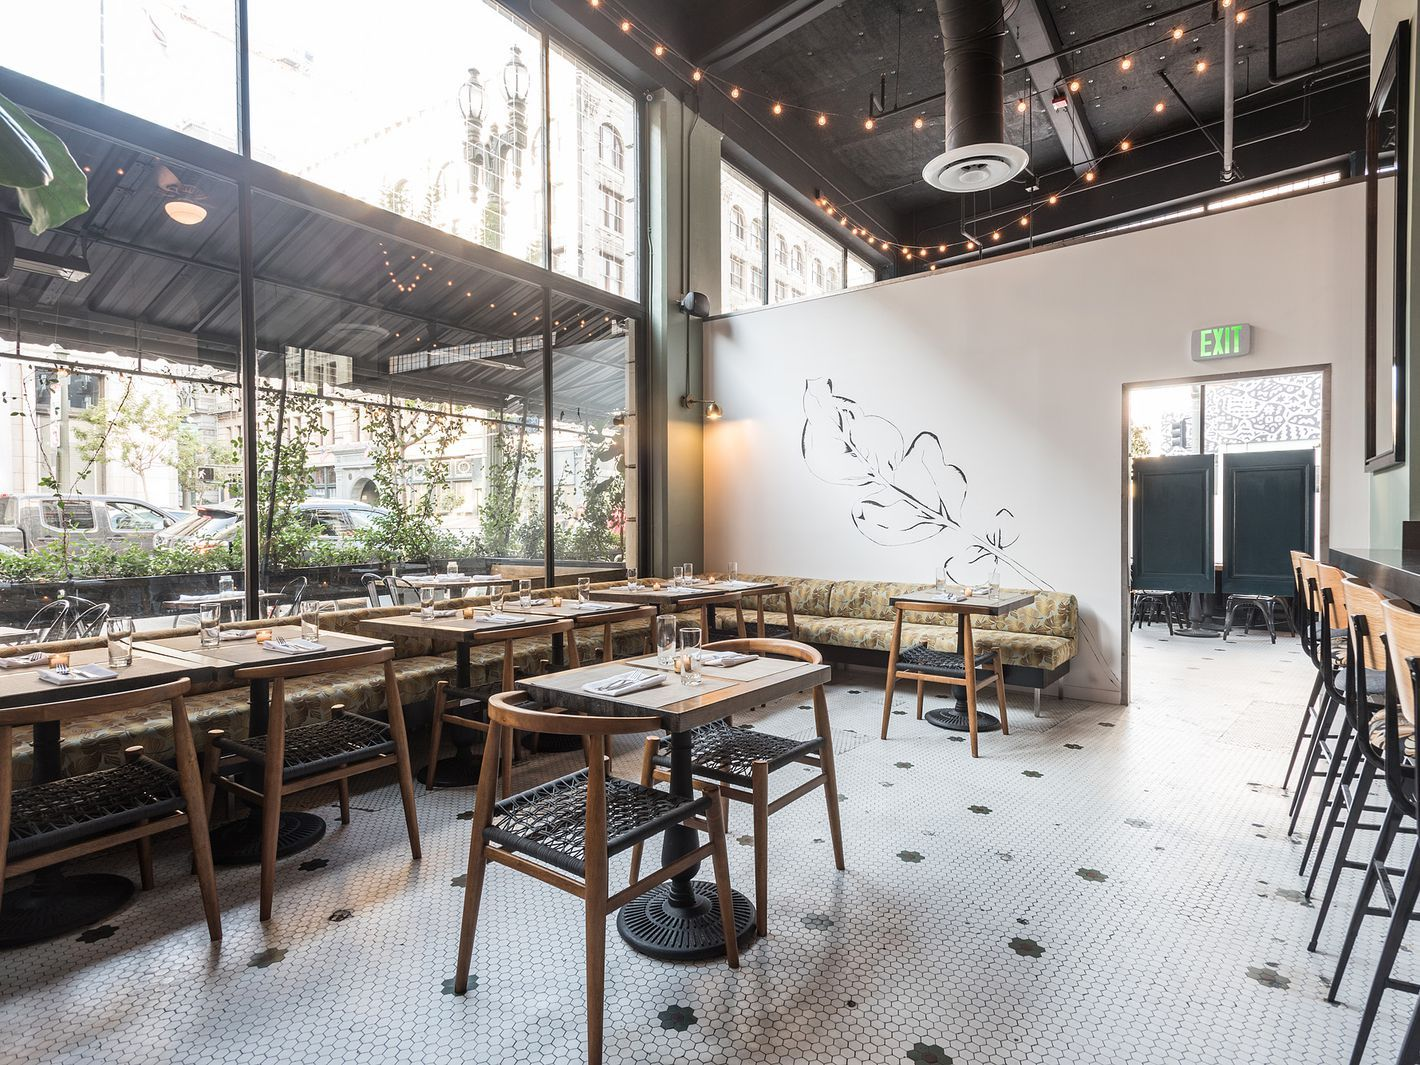 The 38 Best Restaurants In Los Angeles With Images Los Angeles Restaurants Downtown Los Angeles Restaurants Dtla Restaurants